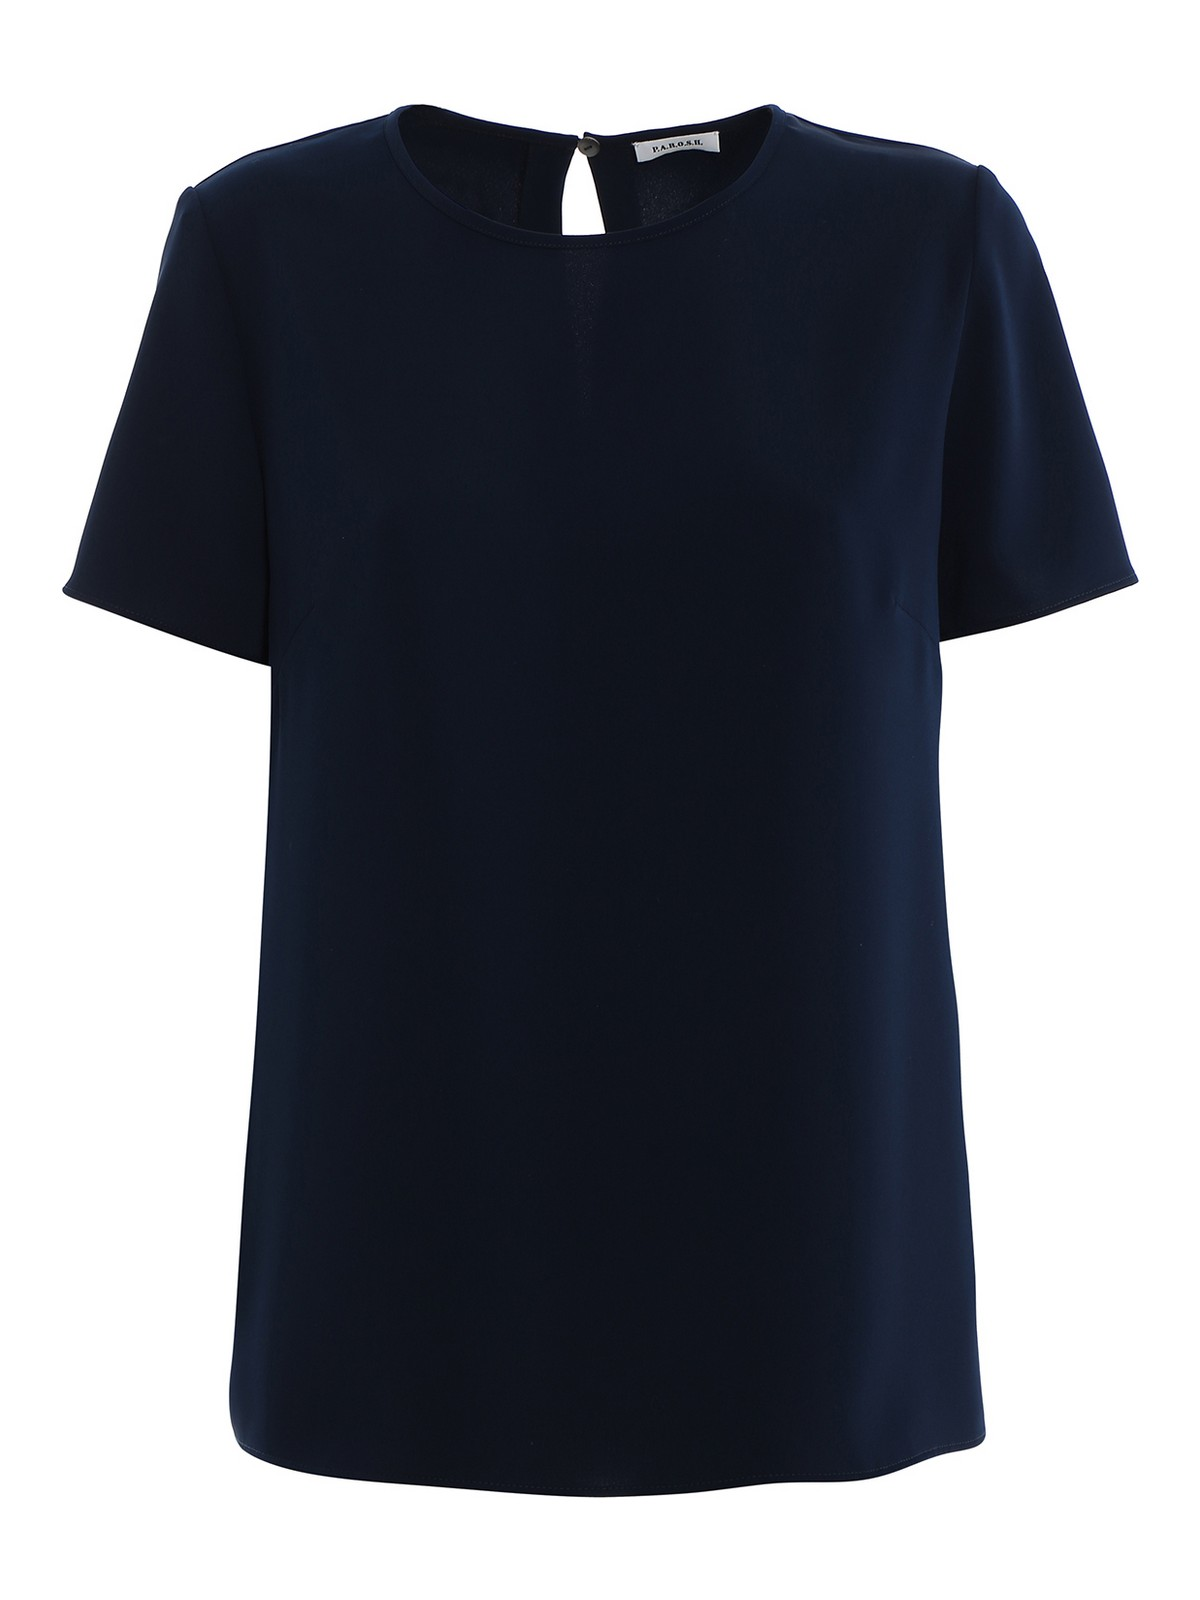 P.a.r.o.s.h. Cady Blouse In Blue